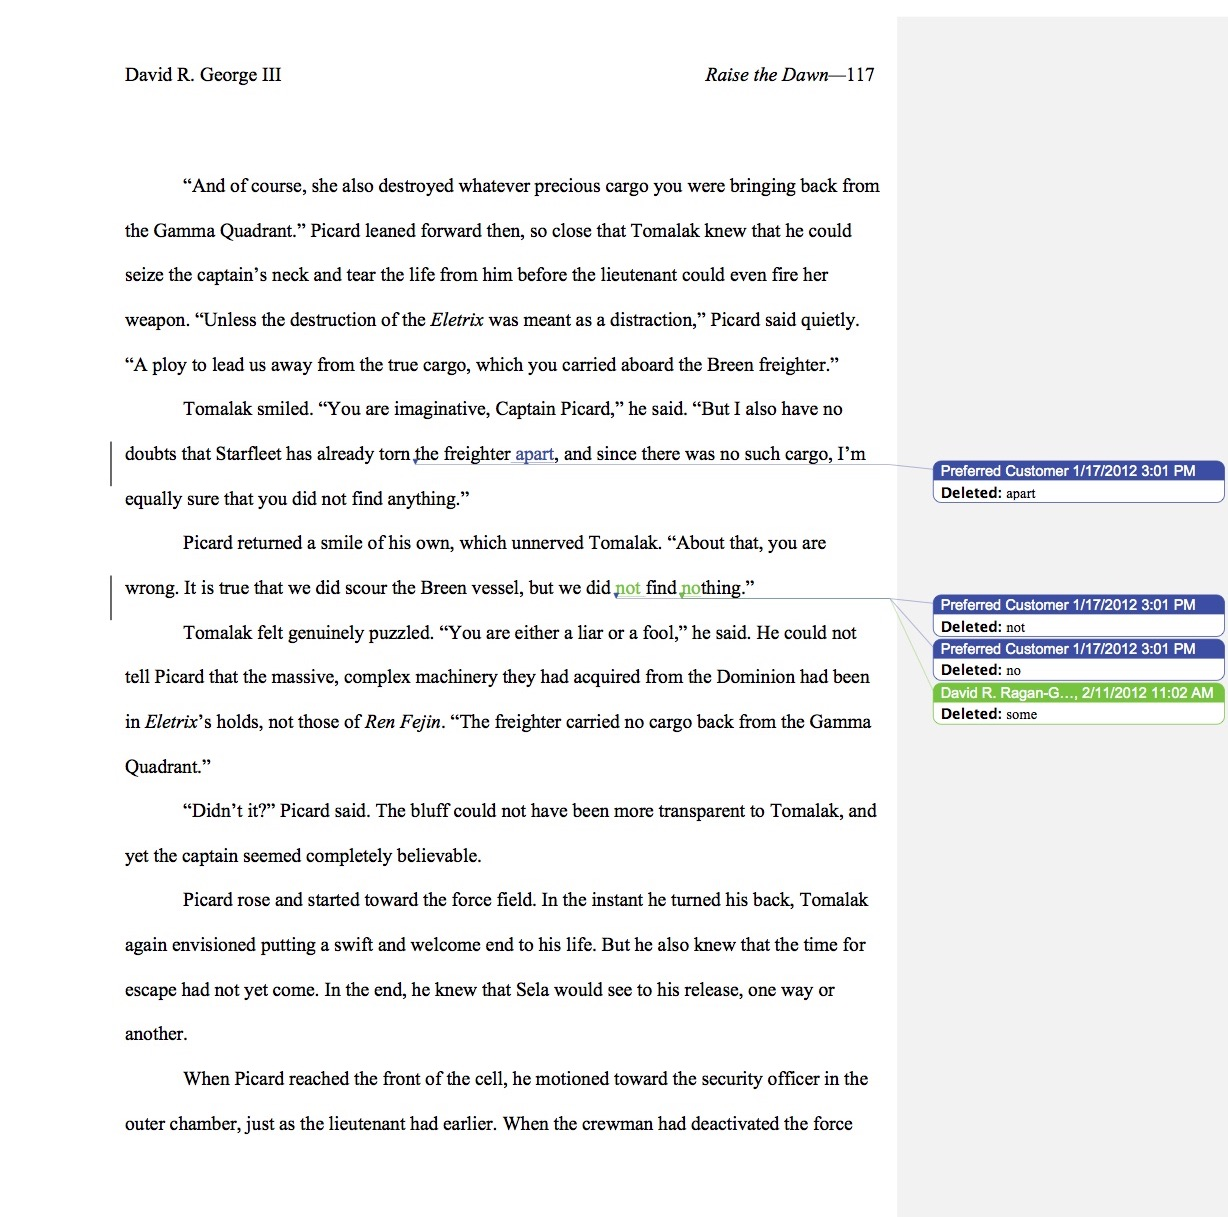 """A manuscript page from   Raise the Dawn  , with changes by the copy editor (oddly identified as """"Preferred Customer"""") marked in blue, and my changes marked in green ©2017 David R. George III"""